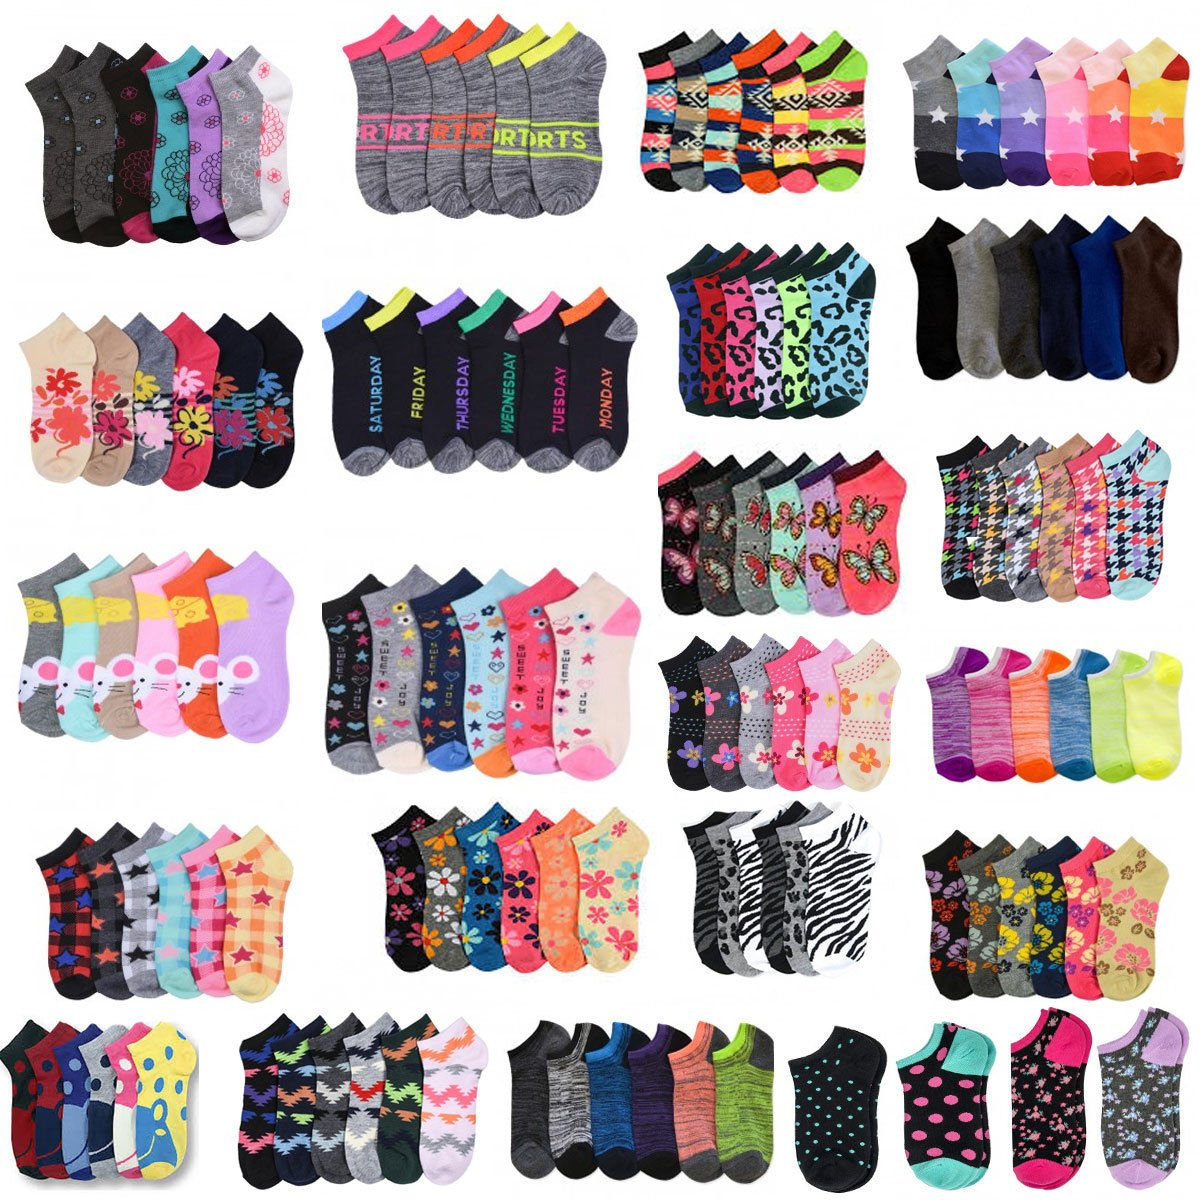 Size 6-8 Wholesale Lot Women's Girl Mixed Assorted Designs Colors Ankle Low Cut Socks - Choose Quantity (12) by zr_dnm